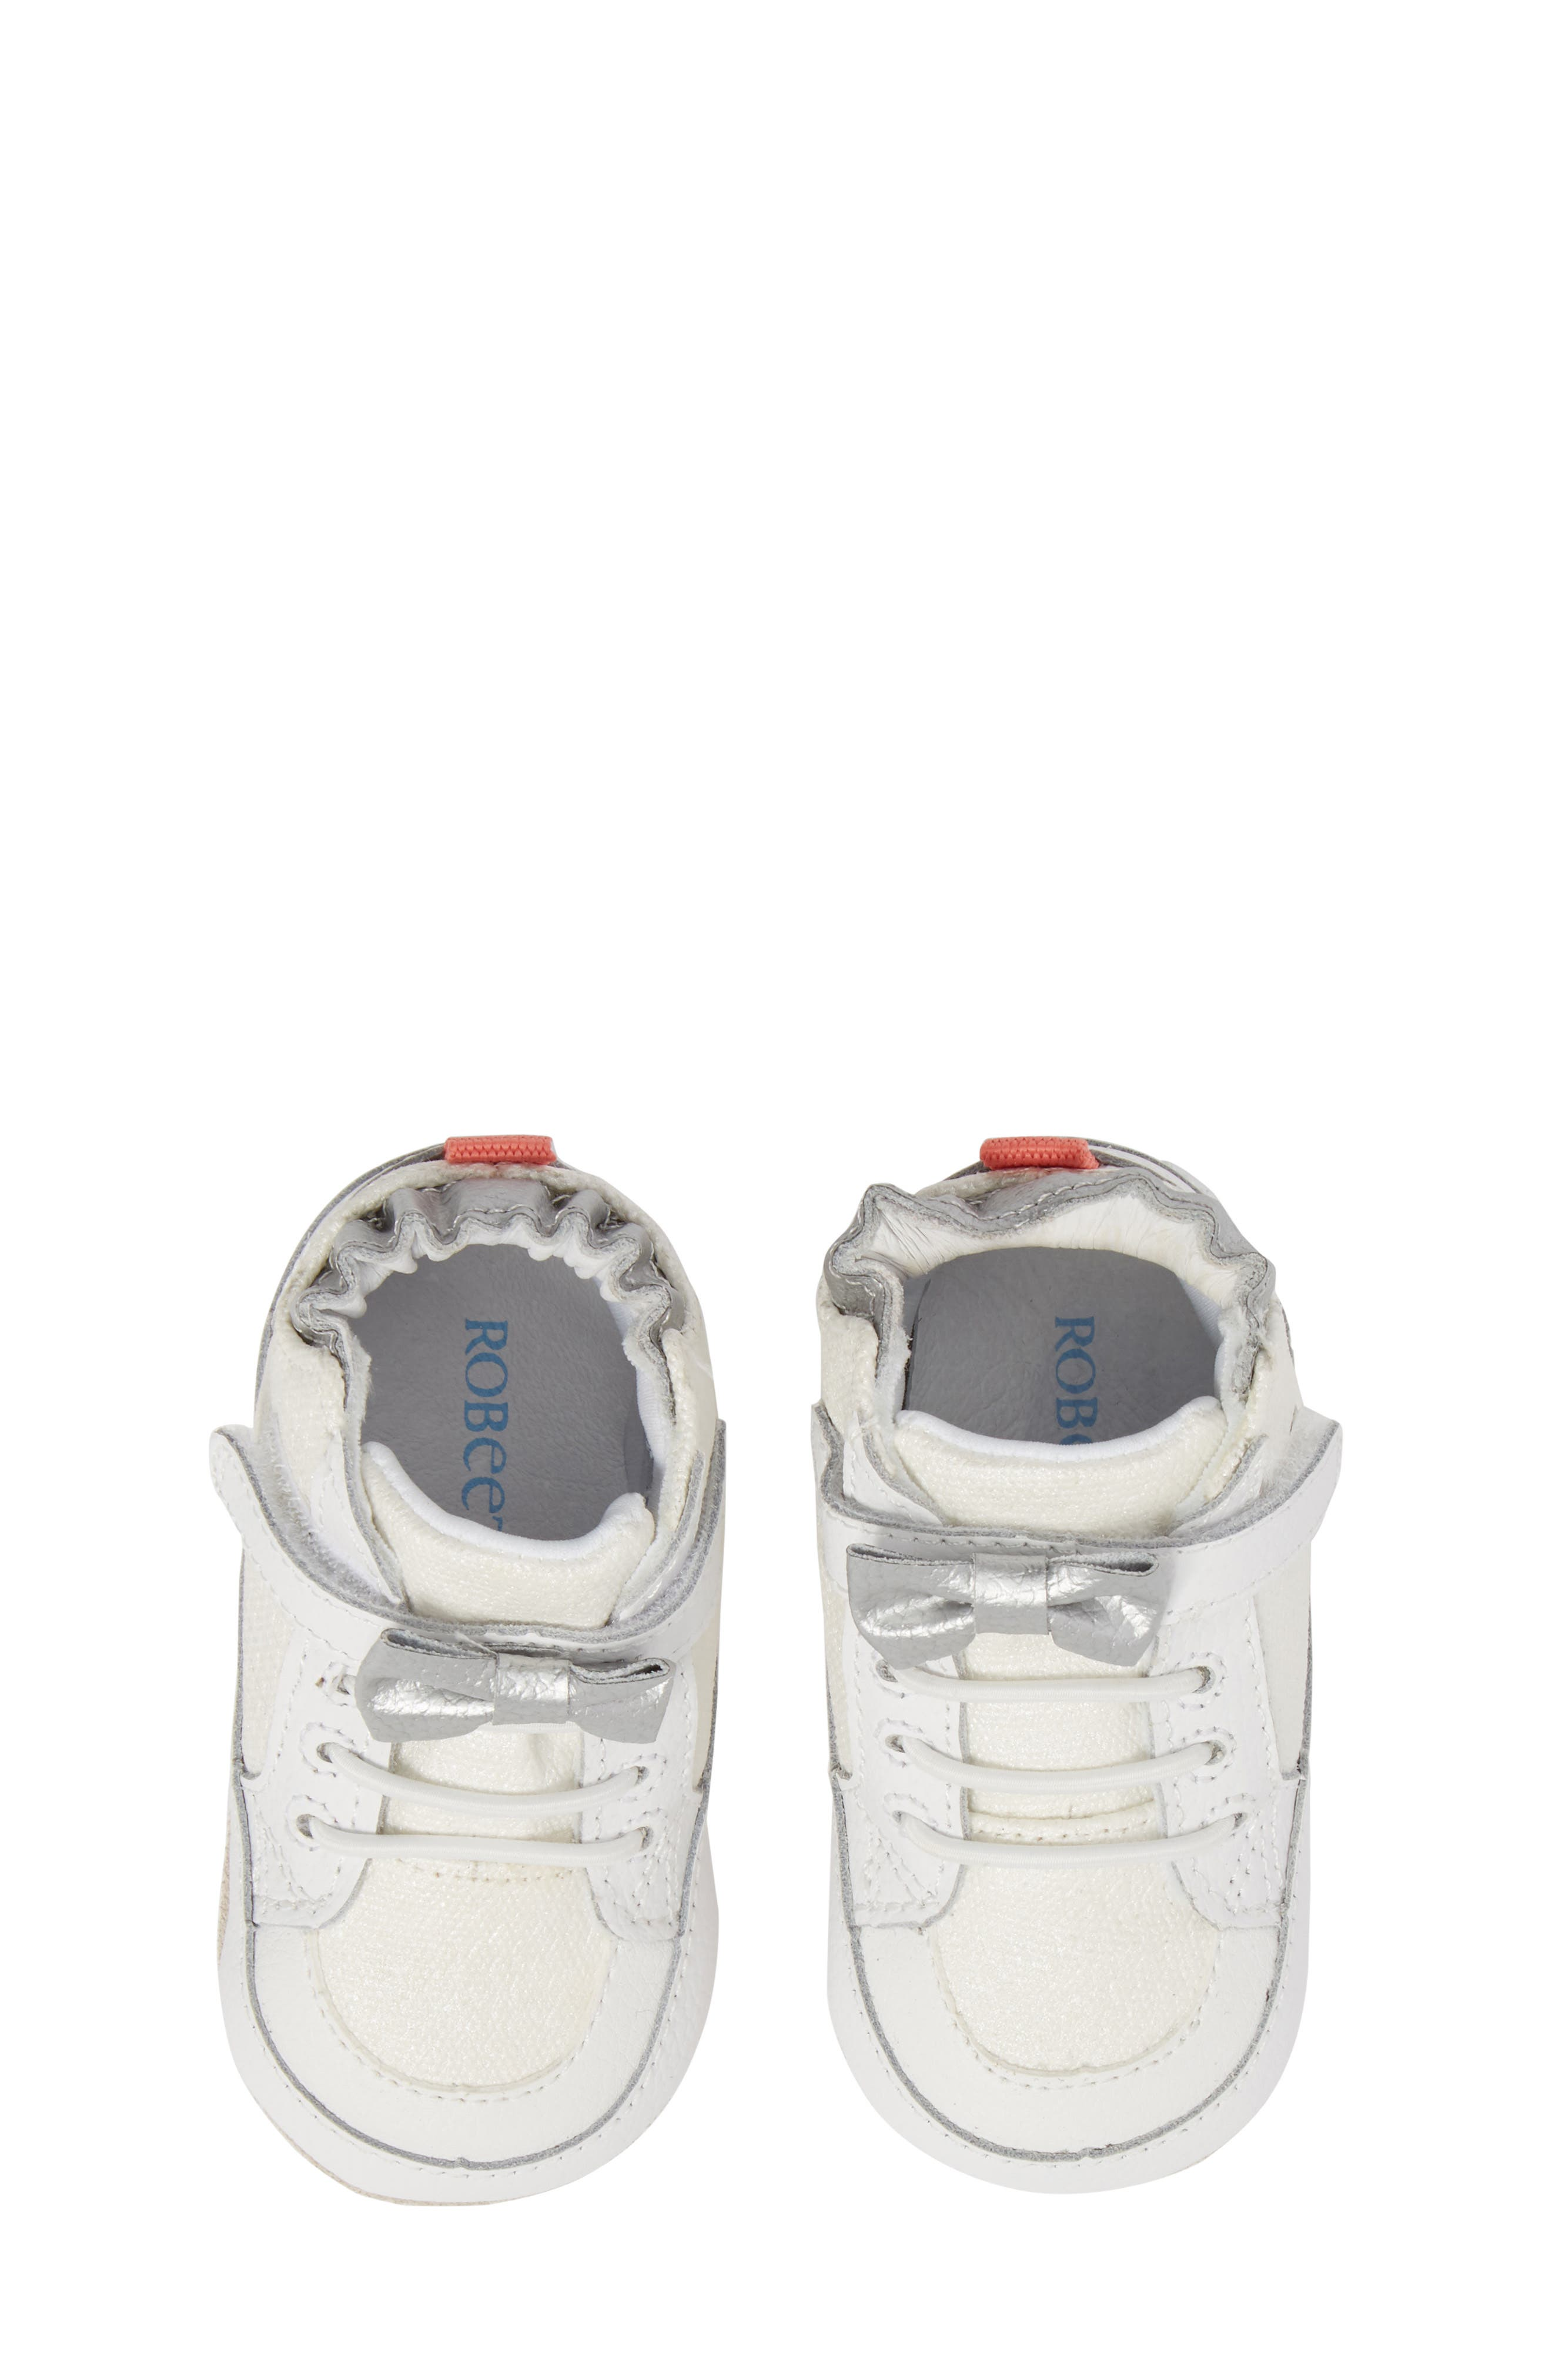 ROBEEZ<SUP>®</SUP>, Skipping Stella Sneaker, Alternate thumbnail 5, color, 100